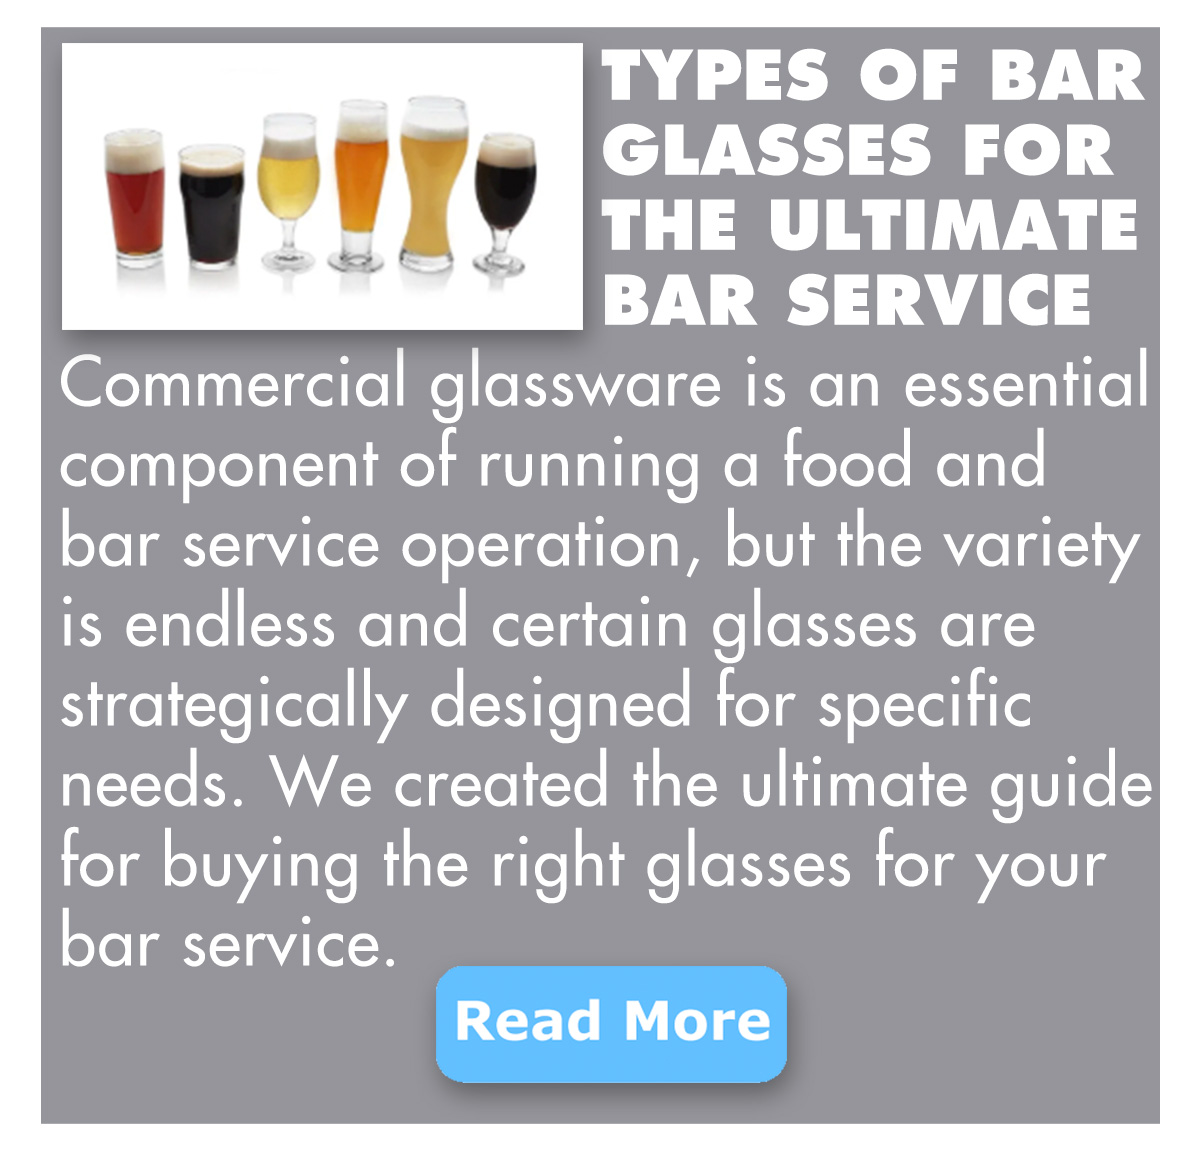 Be in the know of what types of bar glasses for ULTIMATE bar service